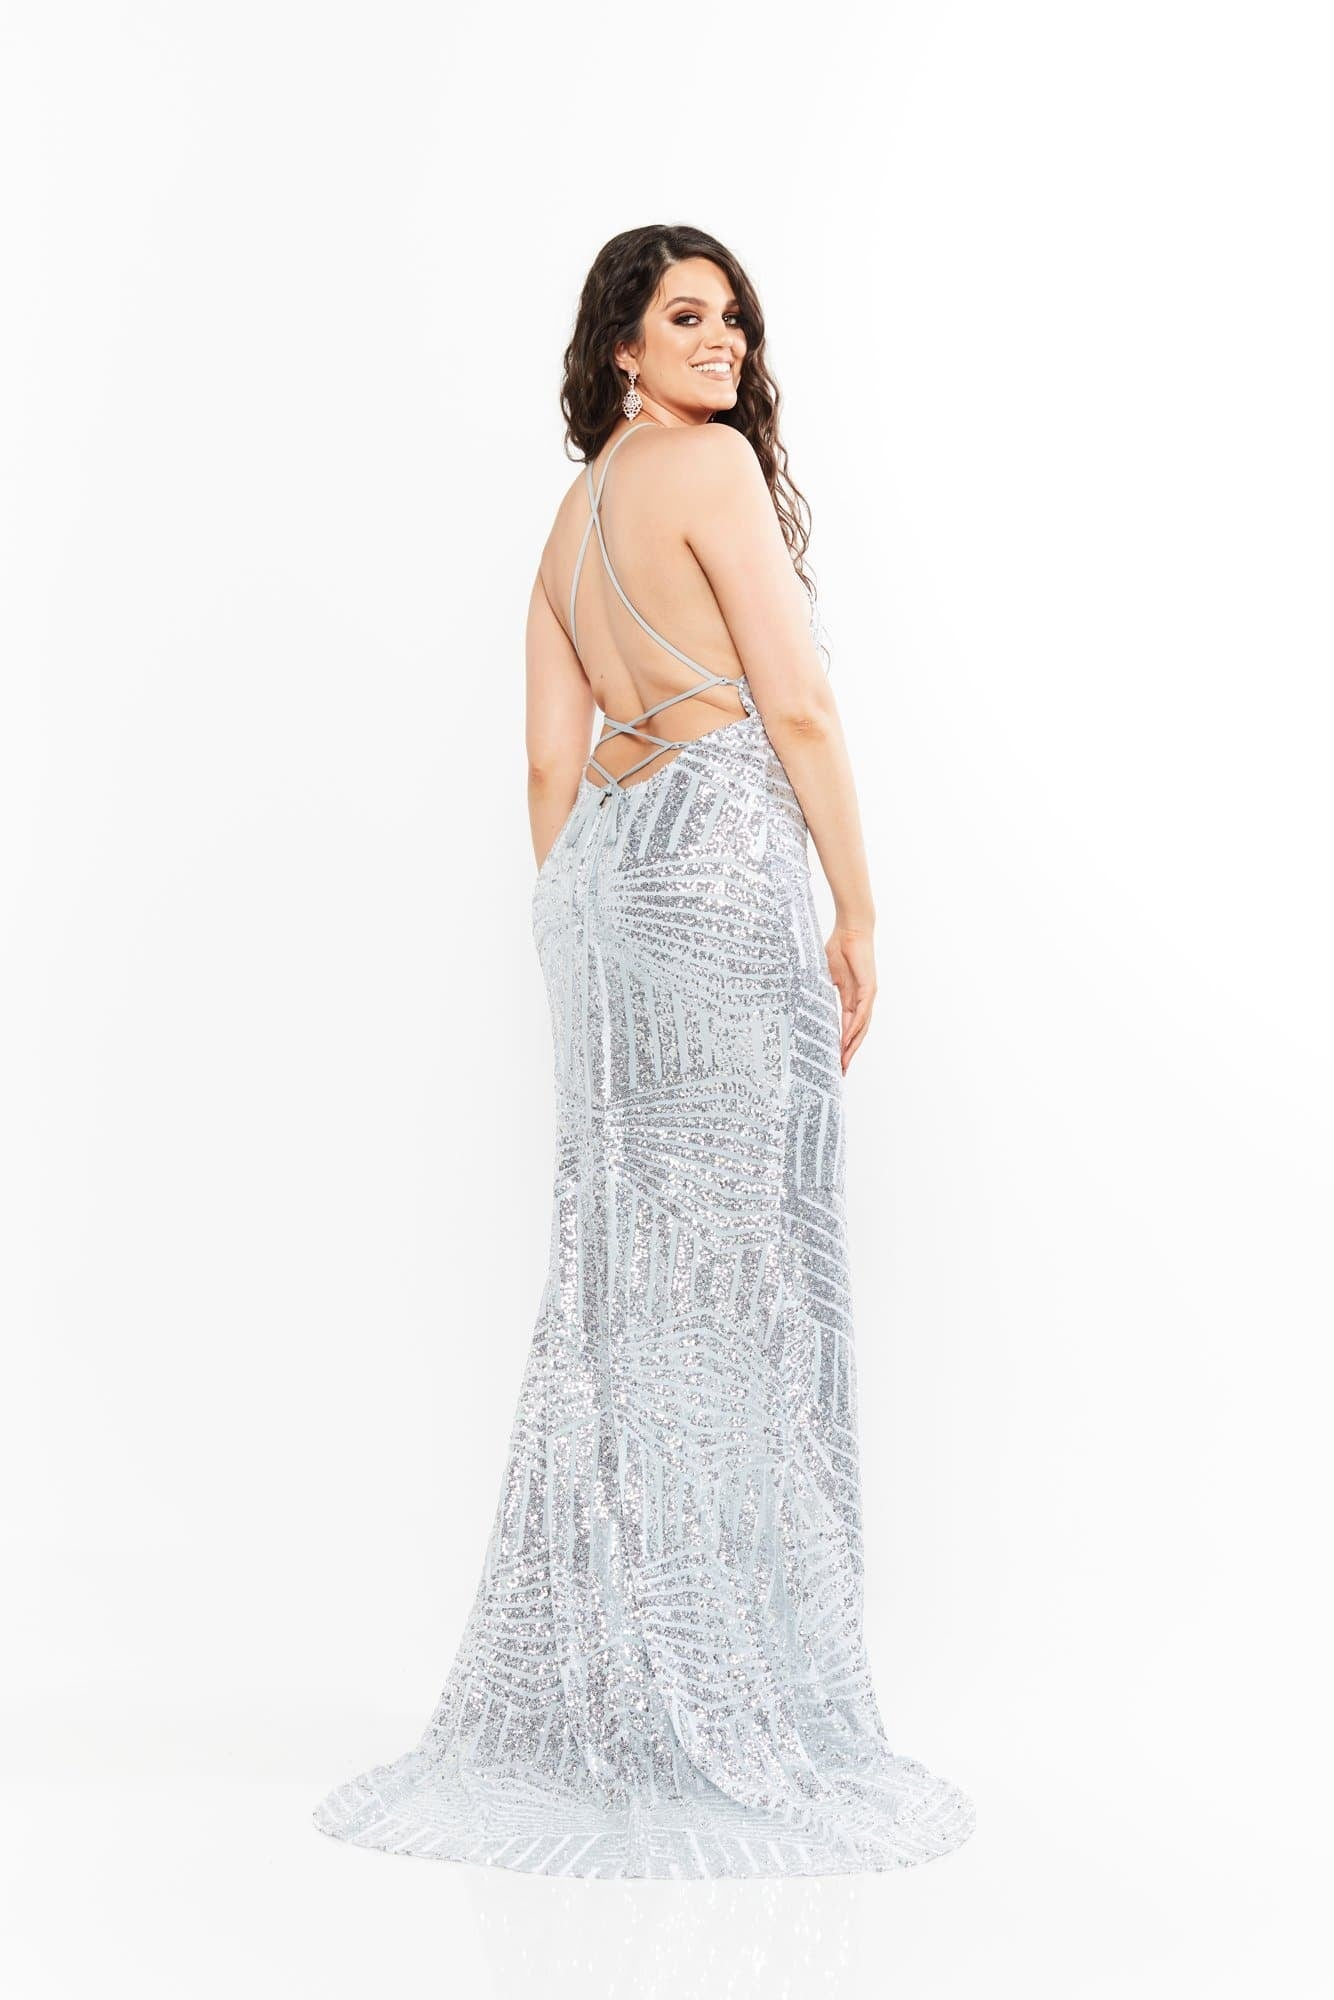 A&N Curve - Silver Cosmo Sequins Gown with Lace-Up Back and Slit